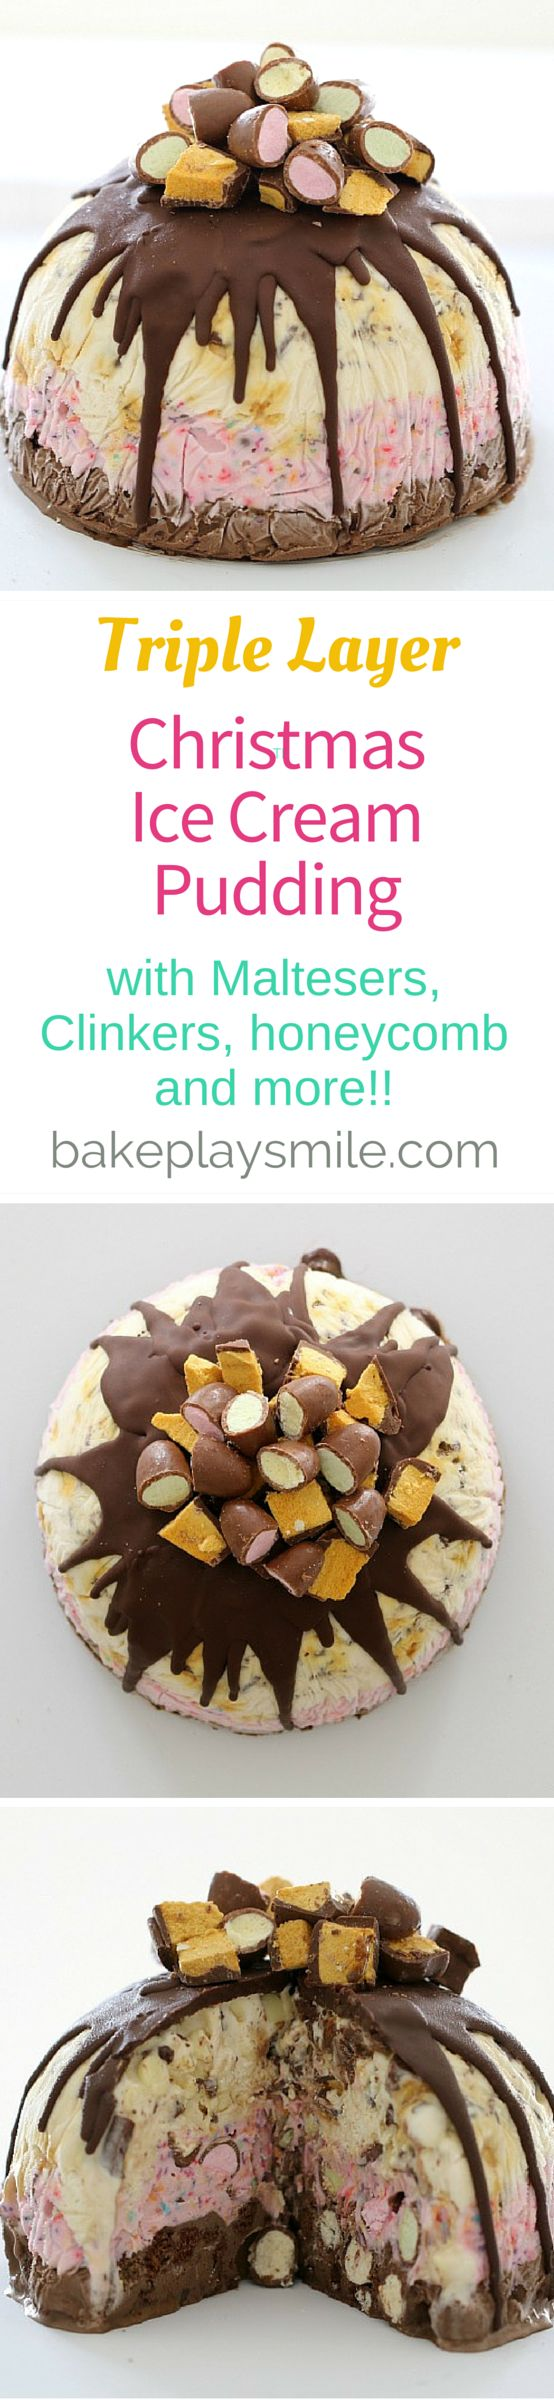 The most AMAZING Triple Layer Christmas Ice Cream Pudding you'll ever make!!! Made from tub of neapolitan ice cream - this is the best Christmas dessert! It has chocolate honeycomb, Maltesers, Clinkers, sprinkles, white chocolate chips, and chocolate biscuits... and Ice Magic! Love this so much! | Bake Play Smile